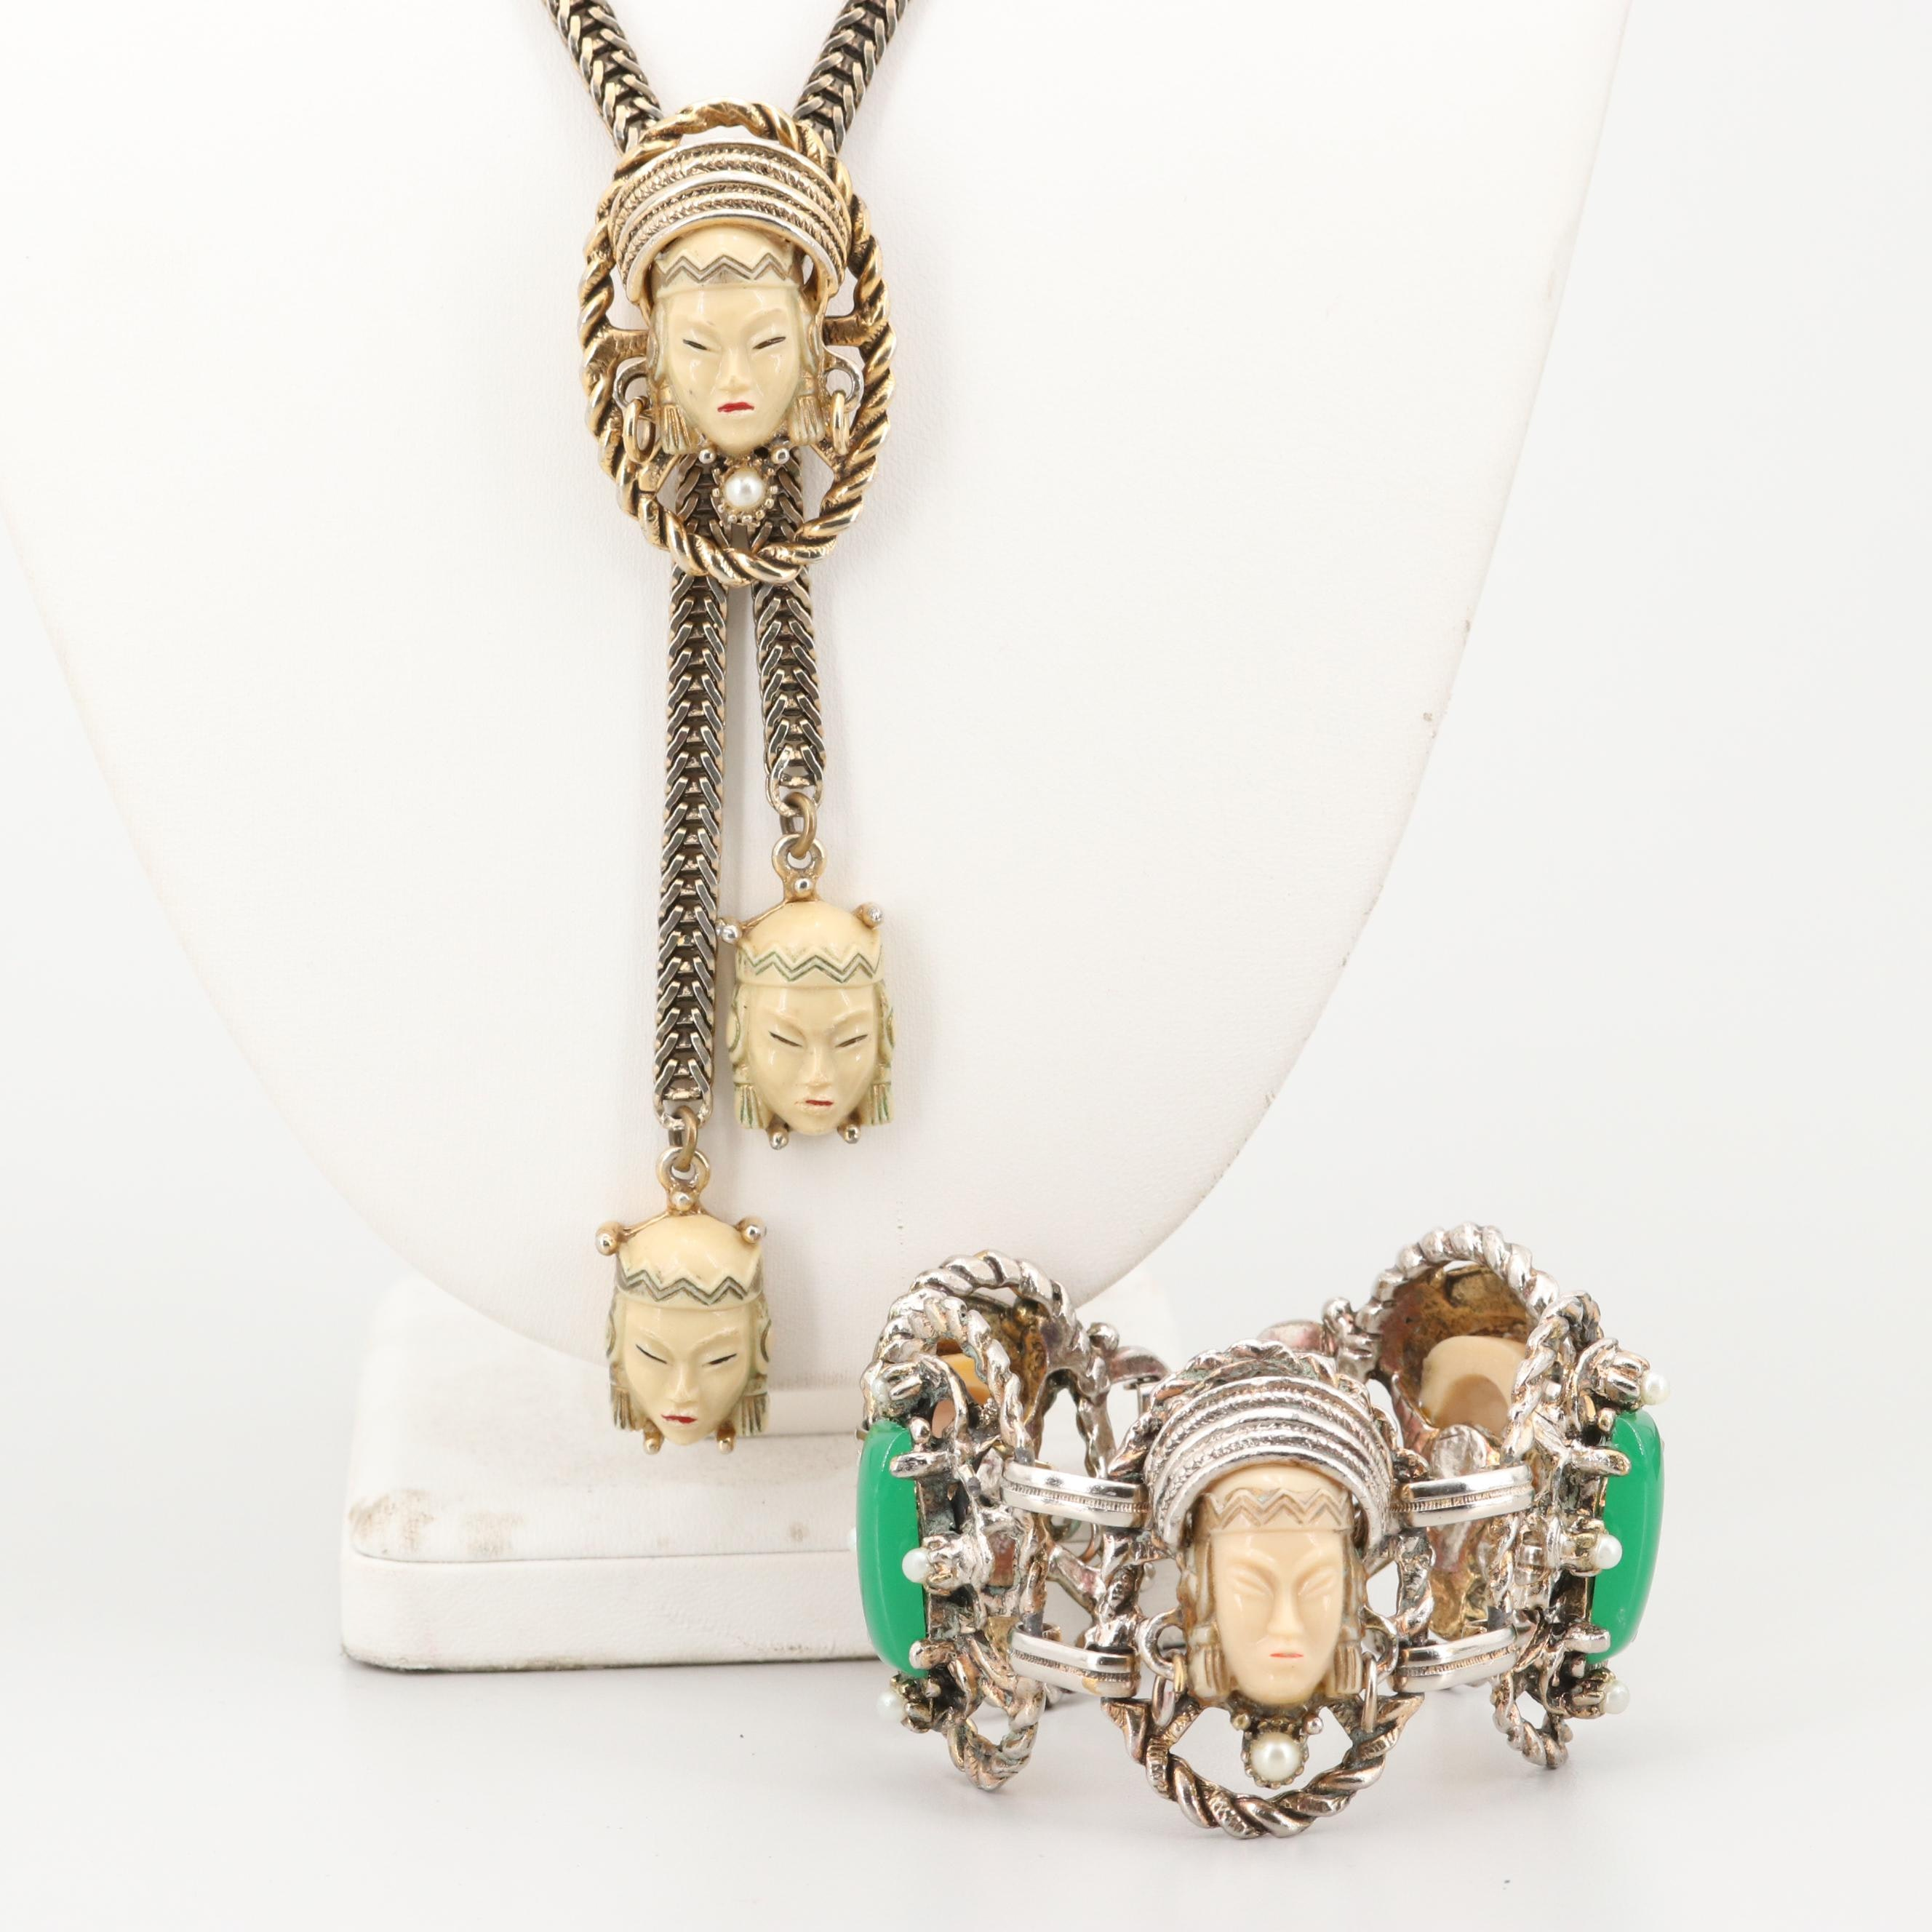 1960s Chinese Inspired Brutalist Necklace and Bracelet